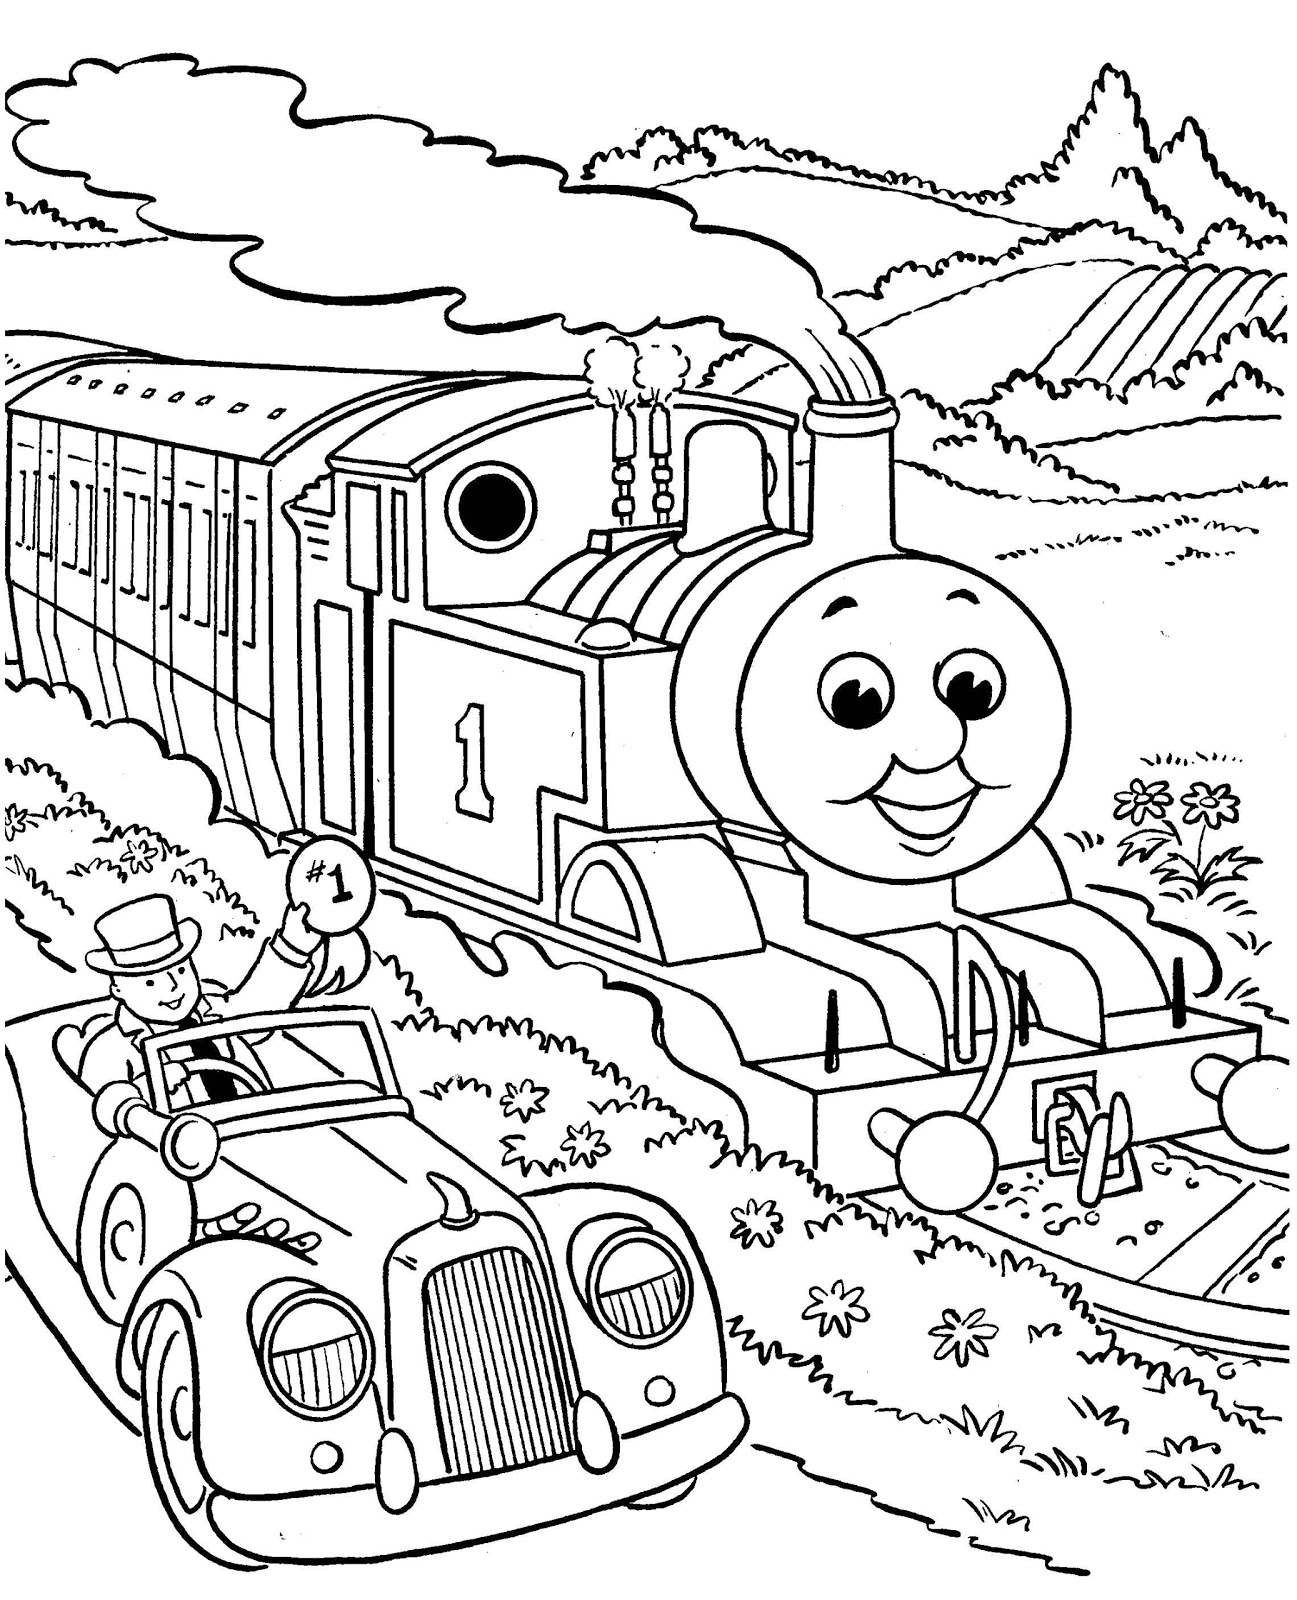 Free printable coloring pages for boys coloring pages for Printable thomas the train coloring pages